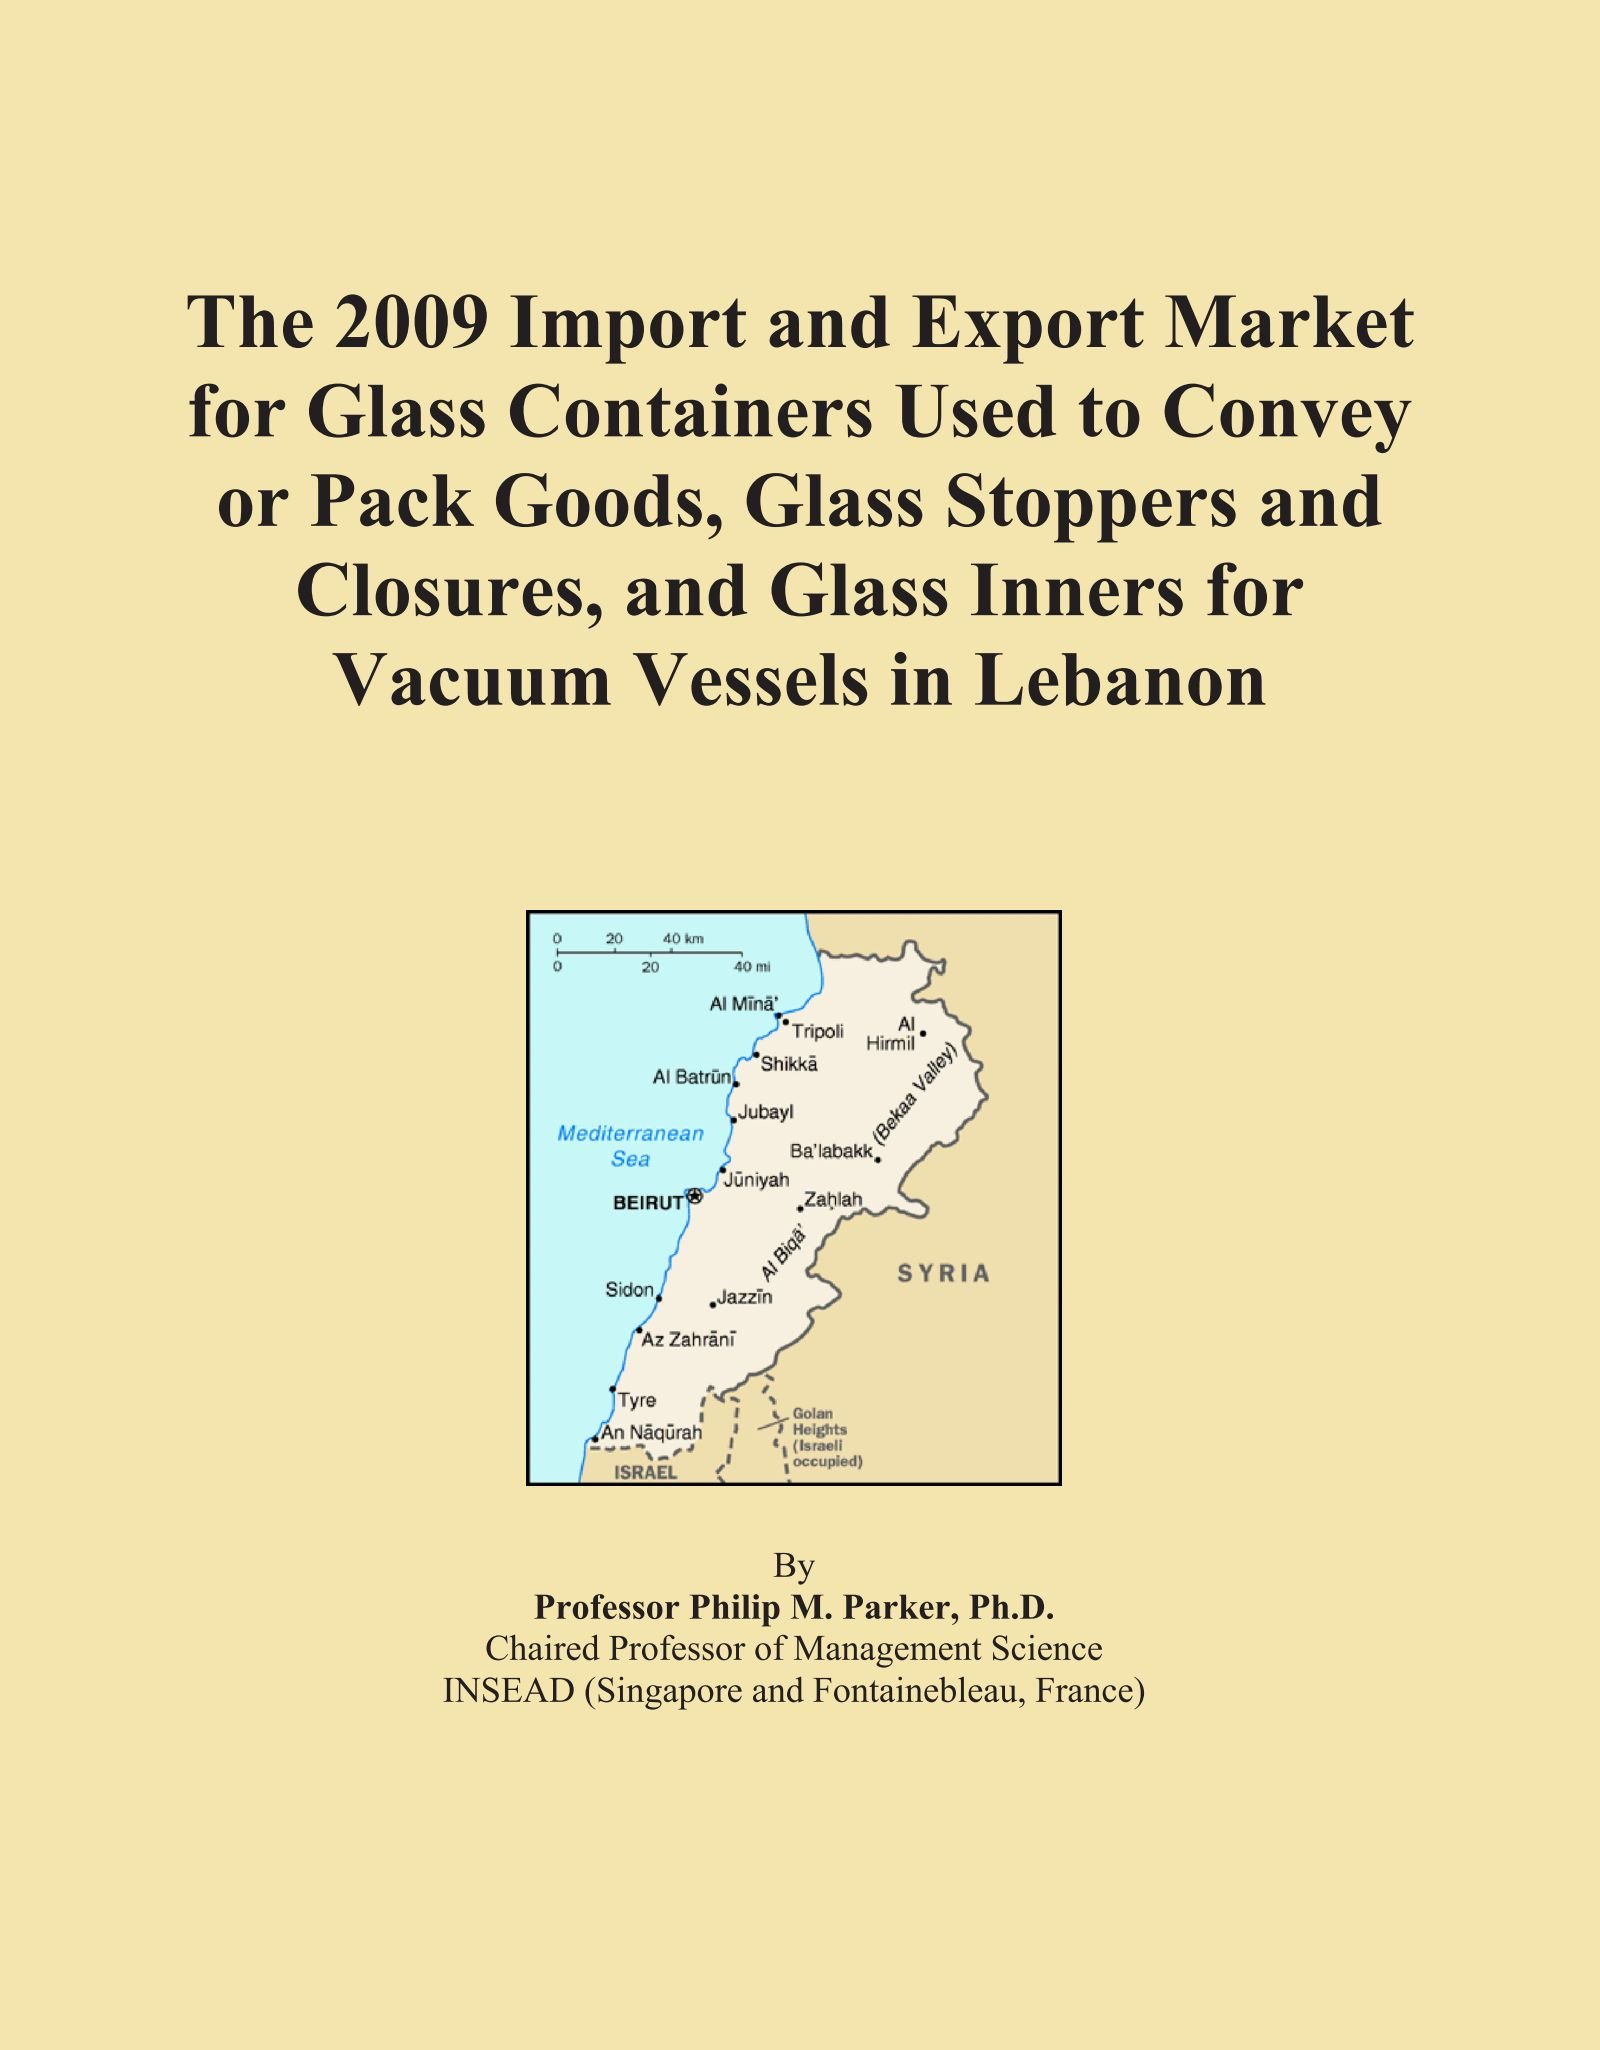 The 2009 Import and Export Market for Glass Containers Used to Convey or Pack Goods, Glass Stoppers and Closures, and Glass Inners for Vacuum Vessels in Lebanon ebook